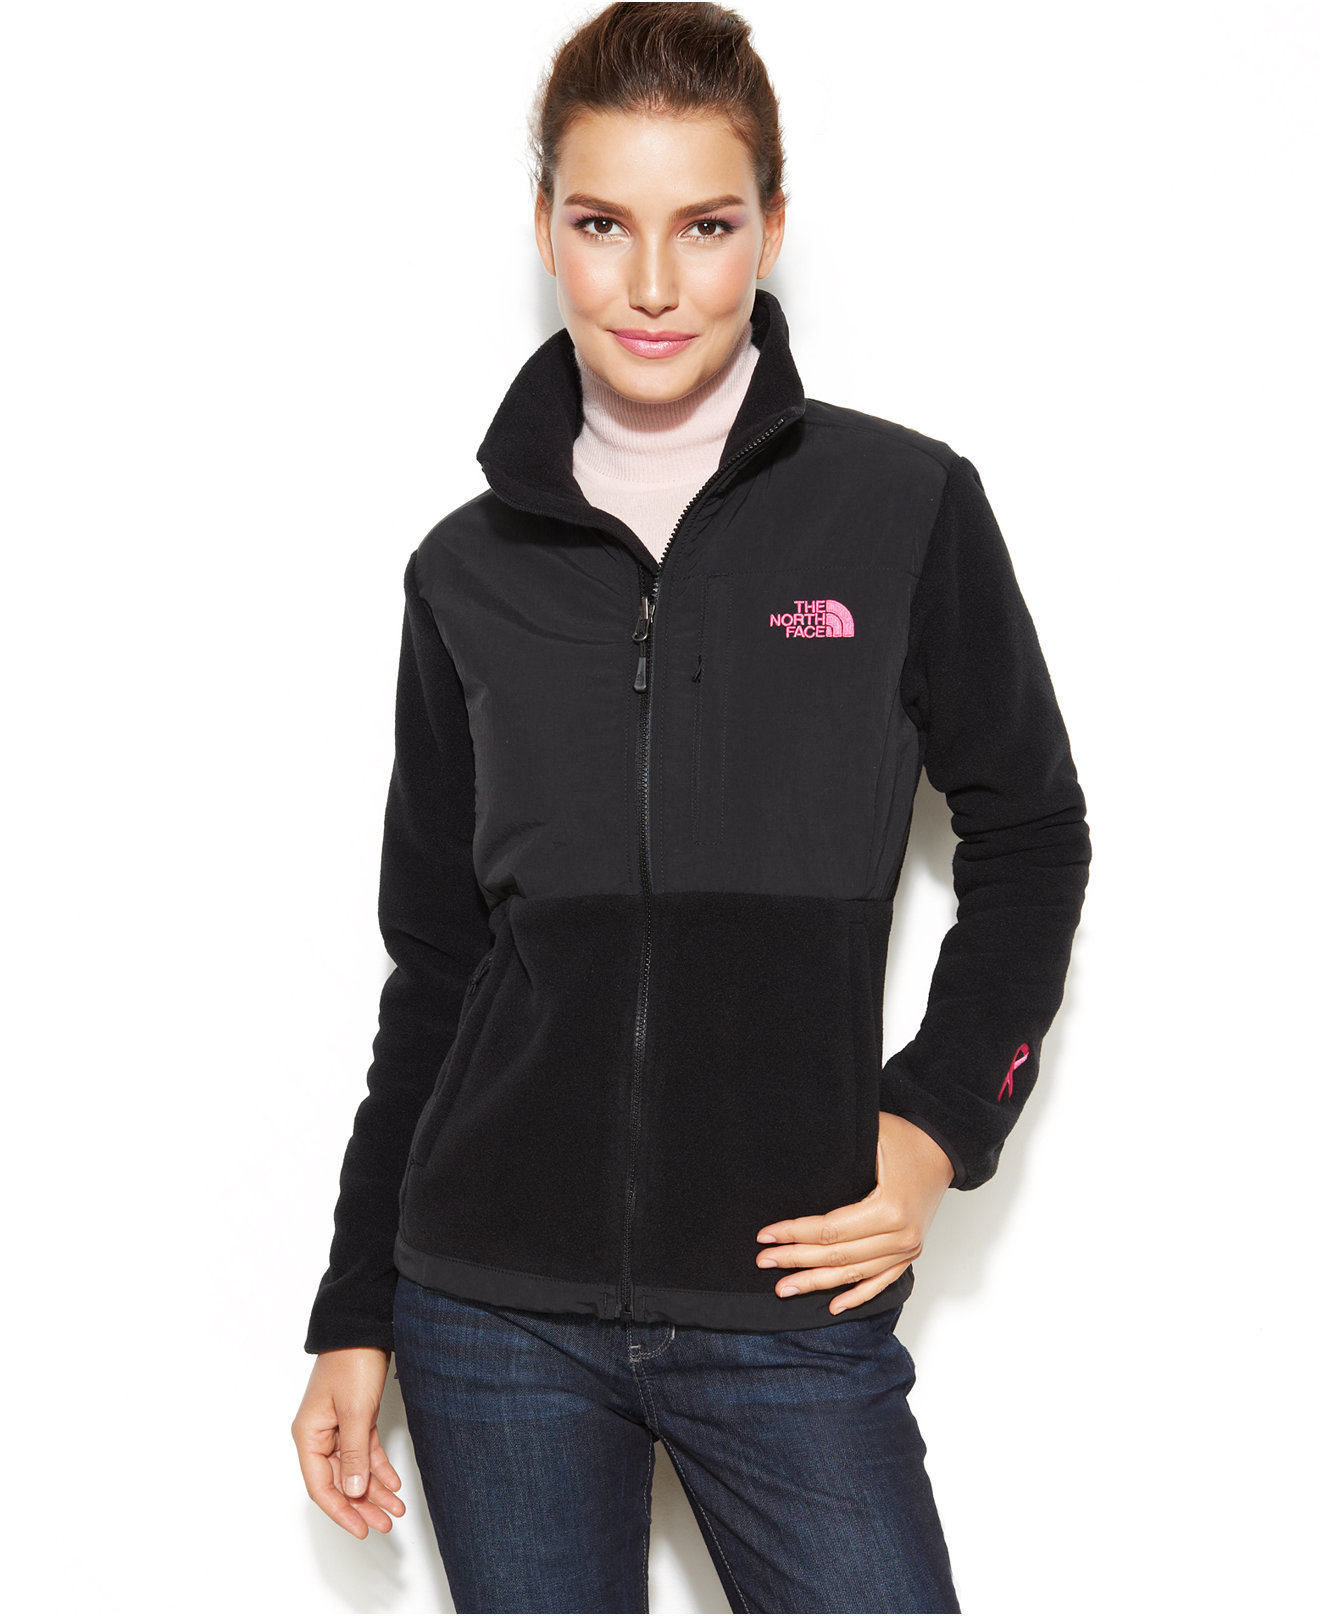 Shop Womens Clothing The North Face Womens Clothing Id 3d31074 North Face Coats Uk